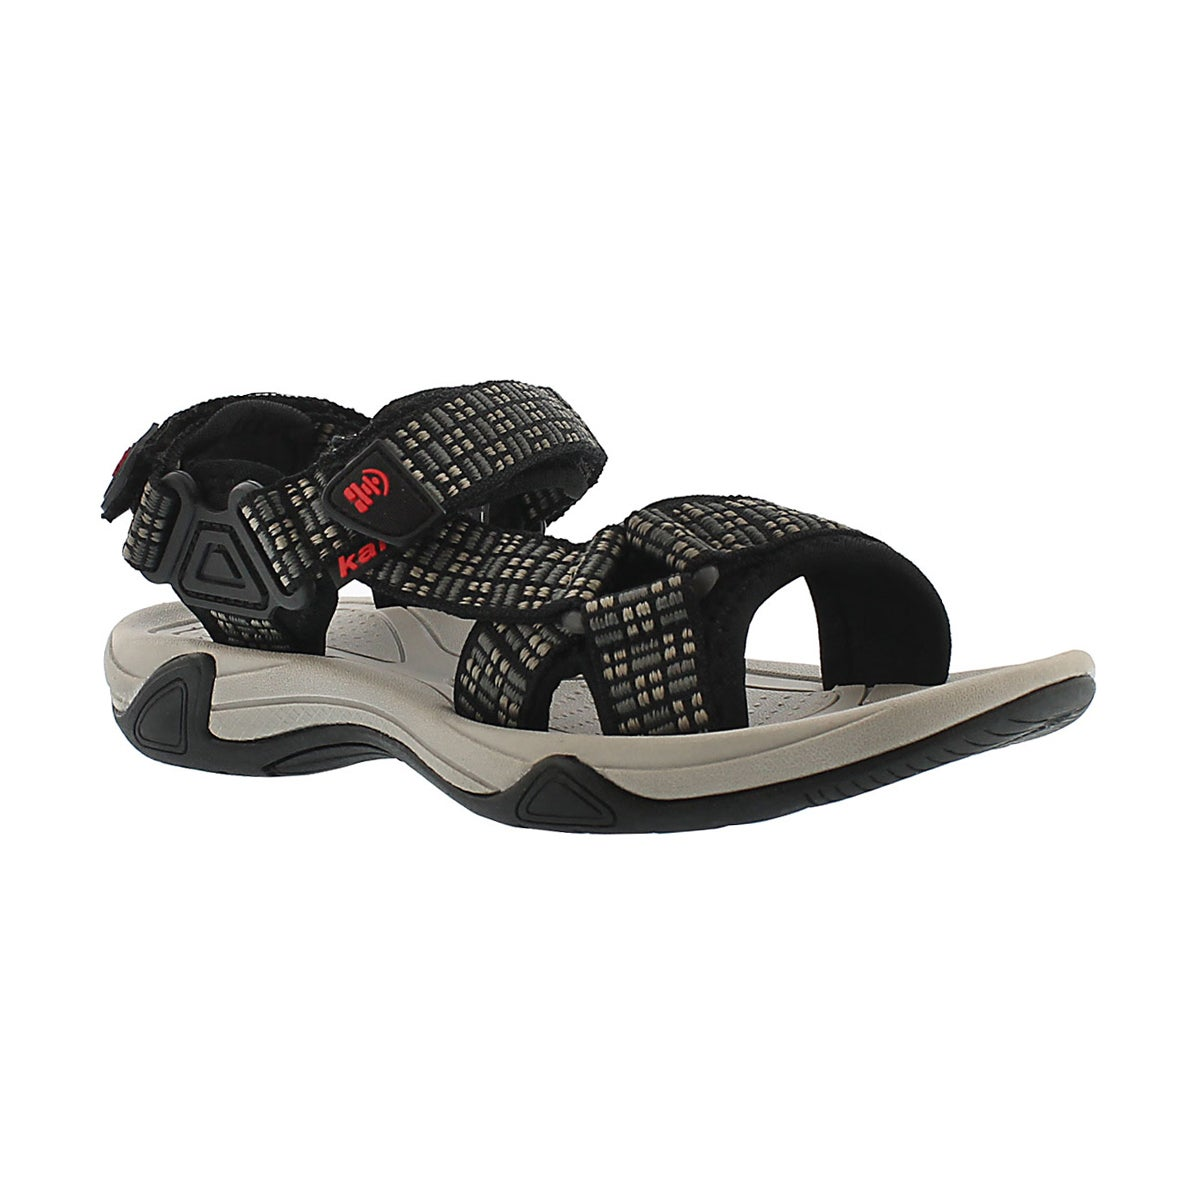 Boys' LOWTIDE charcoal 3 strap sandals